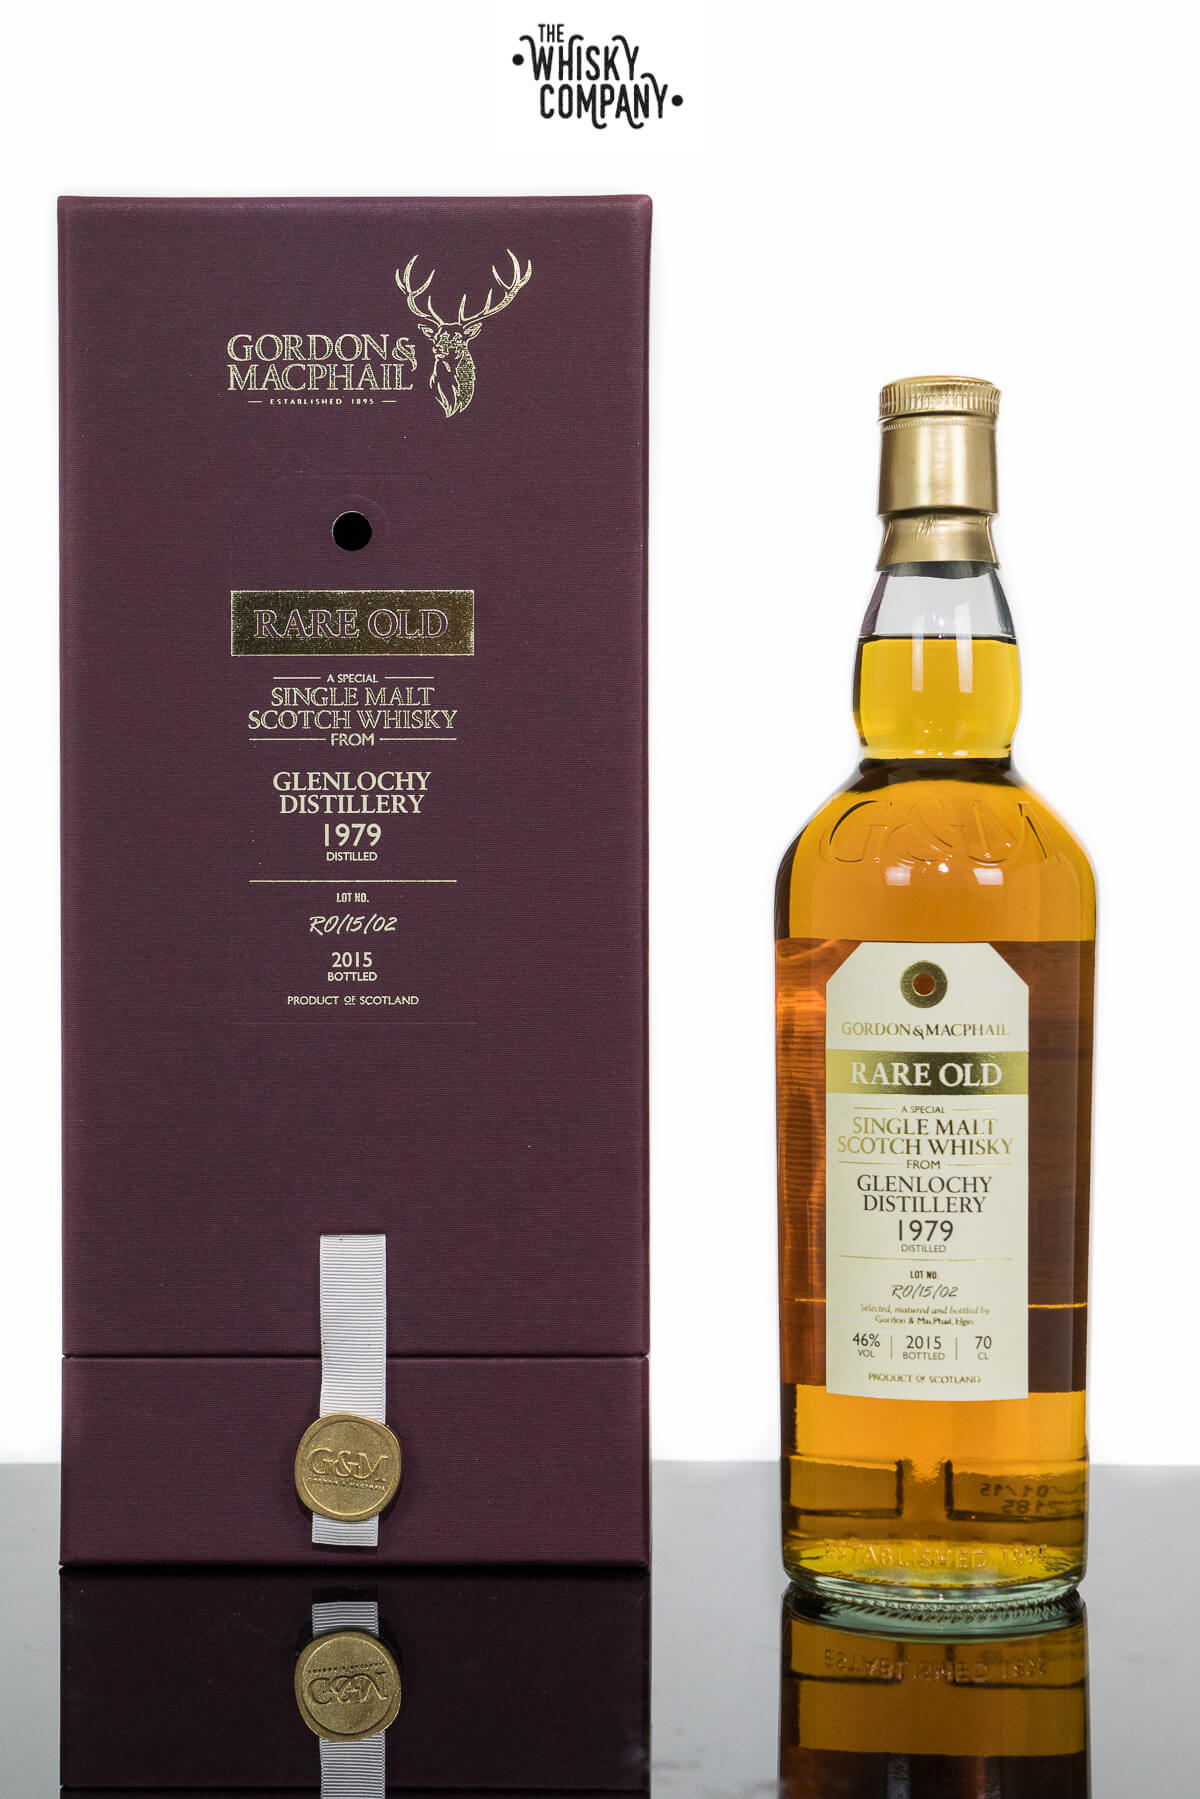 1979 Glenlochy 36 Years Old Single Malt Scotch Whisky (Gordon and Macphail) (700ml)